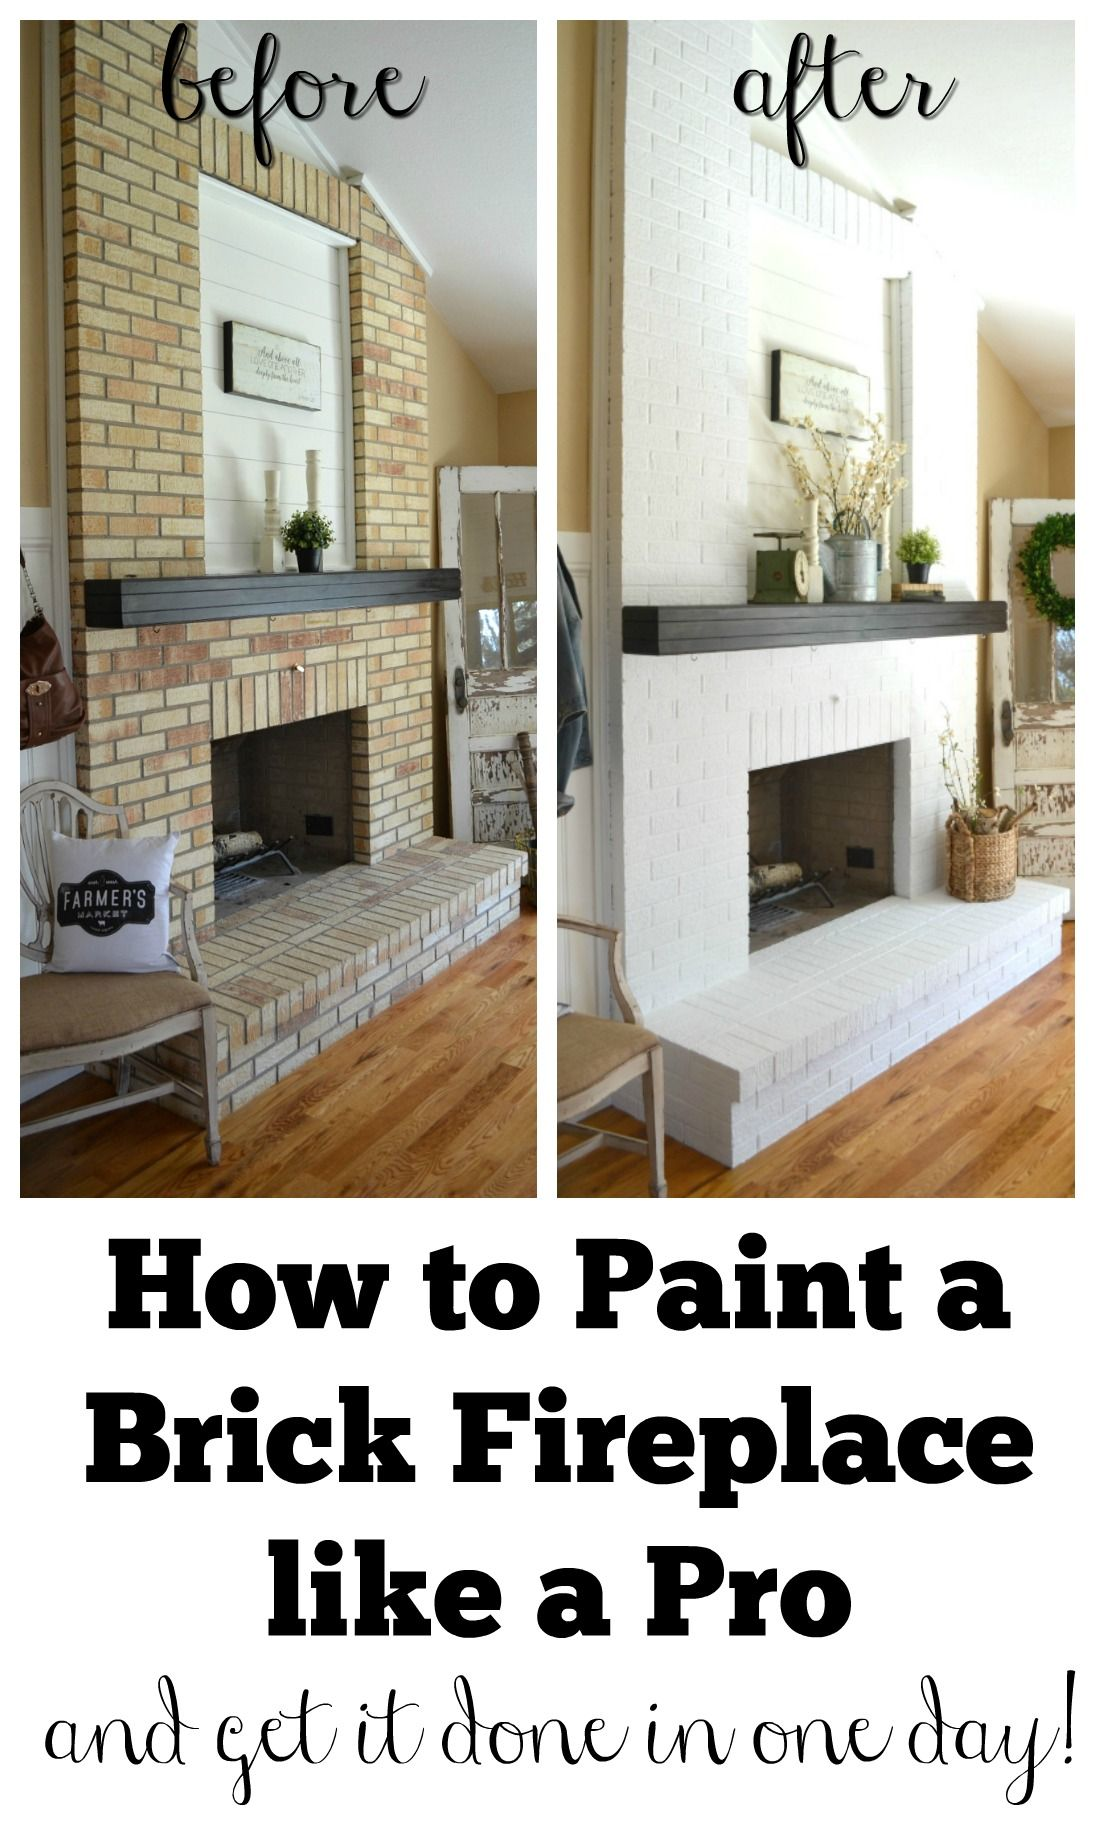 How To Decorate A Brick Fireplace How To Paint A Brick Fireplace Decorating Brick Fireplace